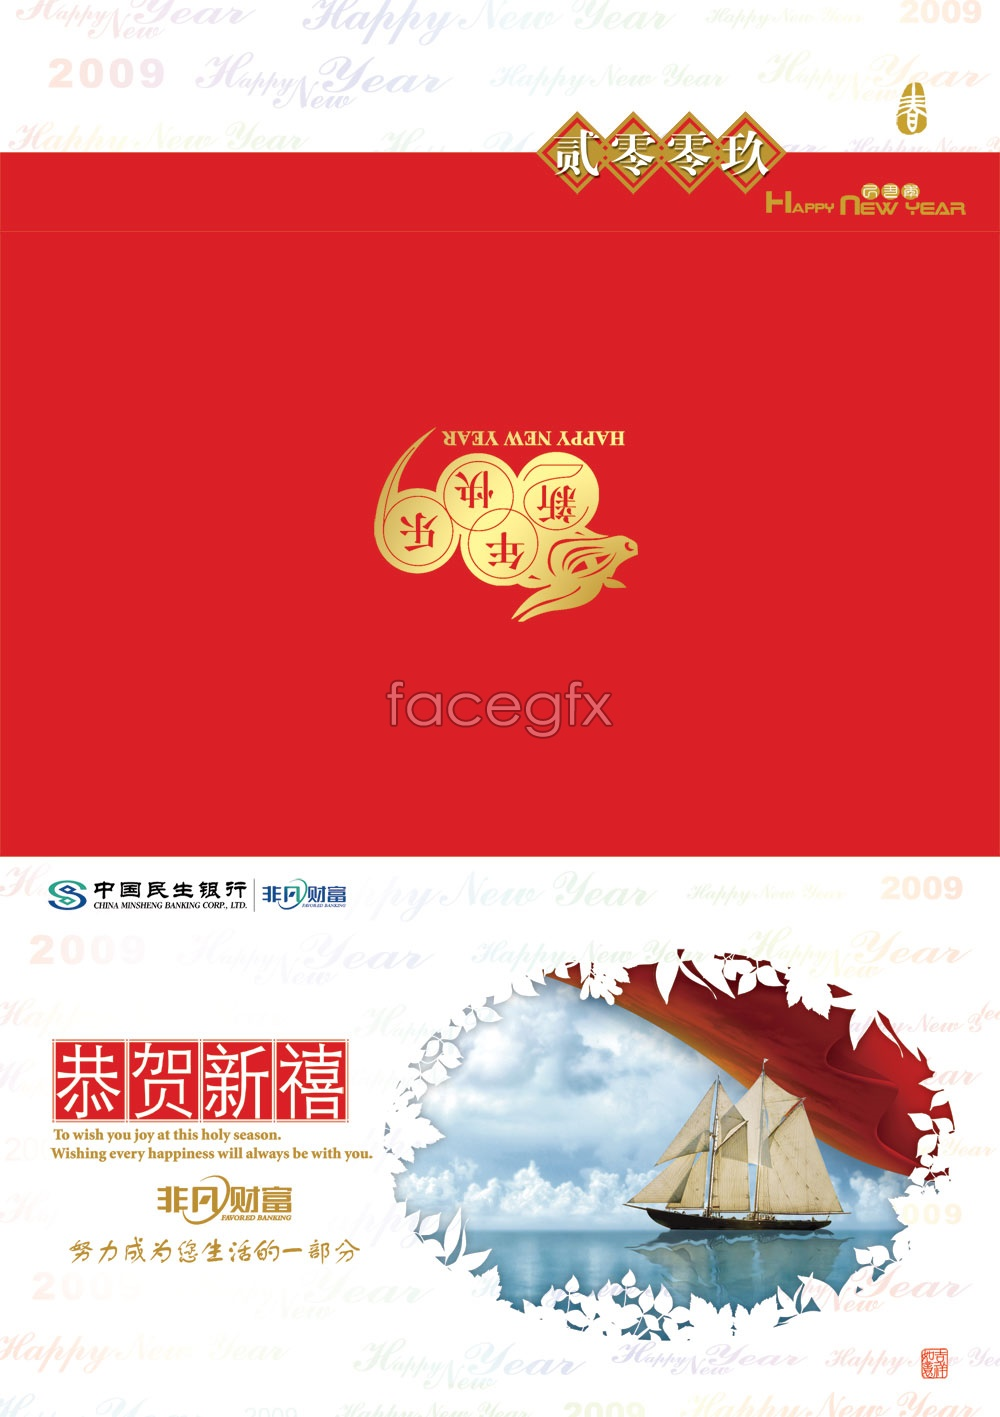 Minsheng Bank new year greeting cards PSD